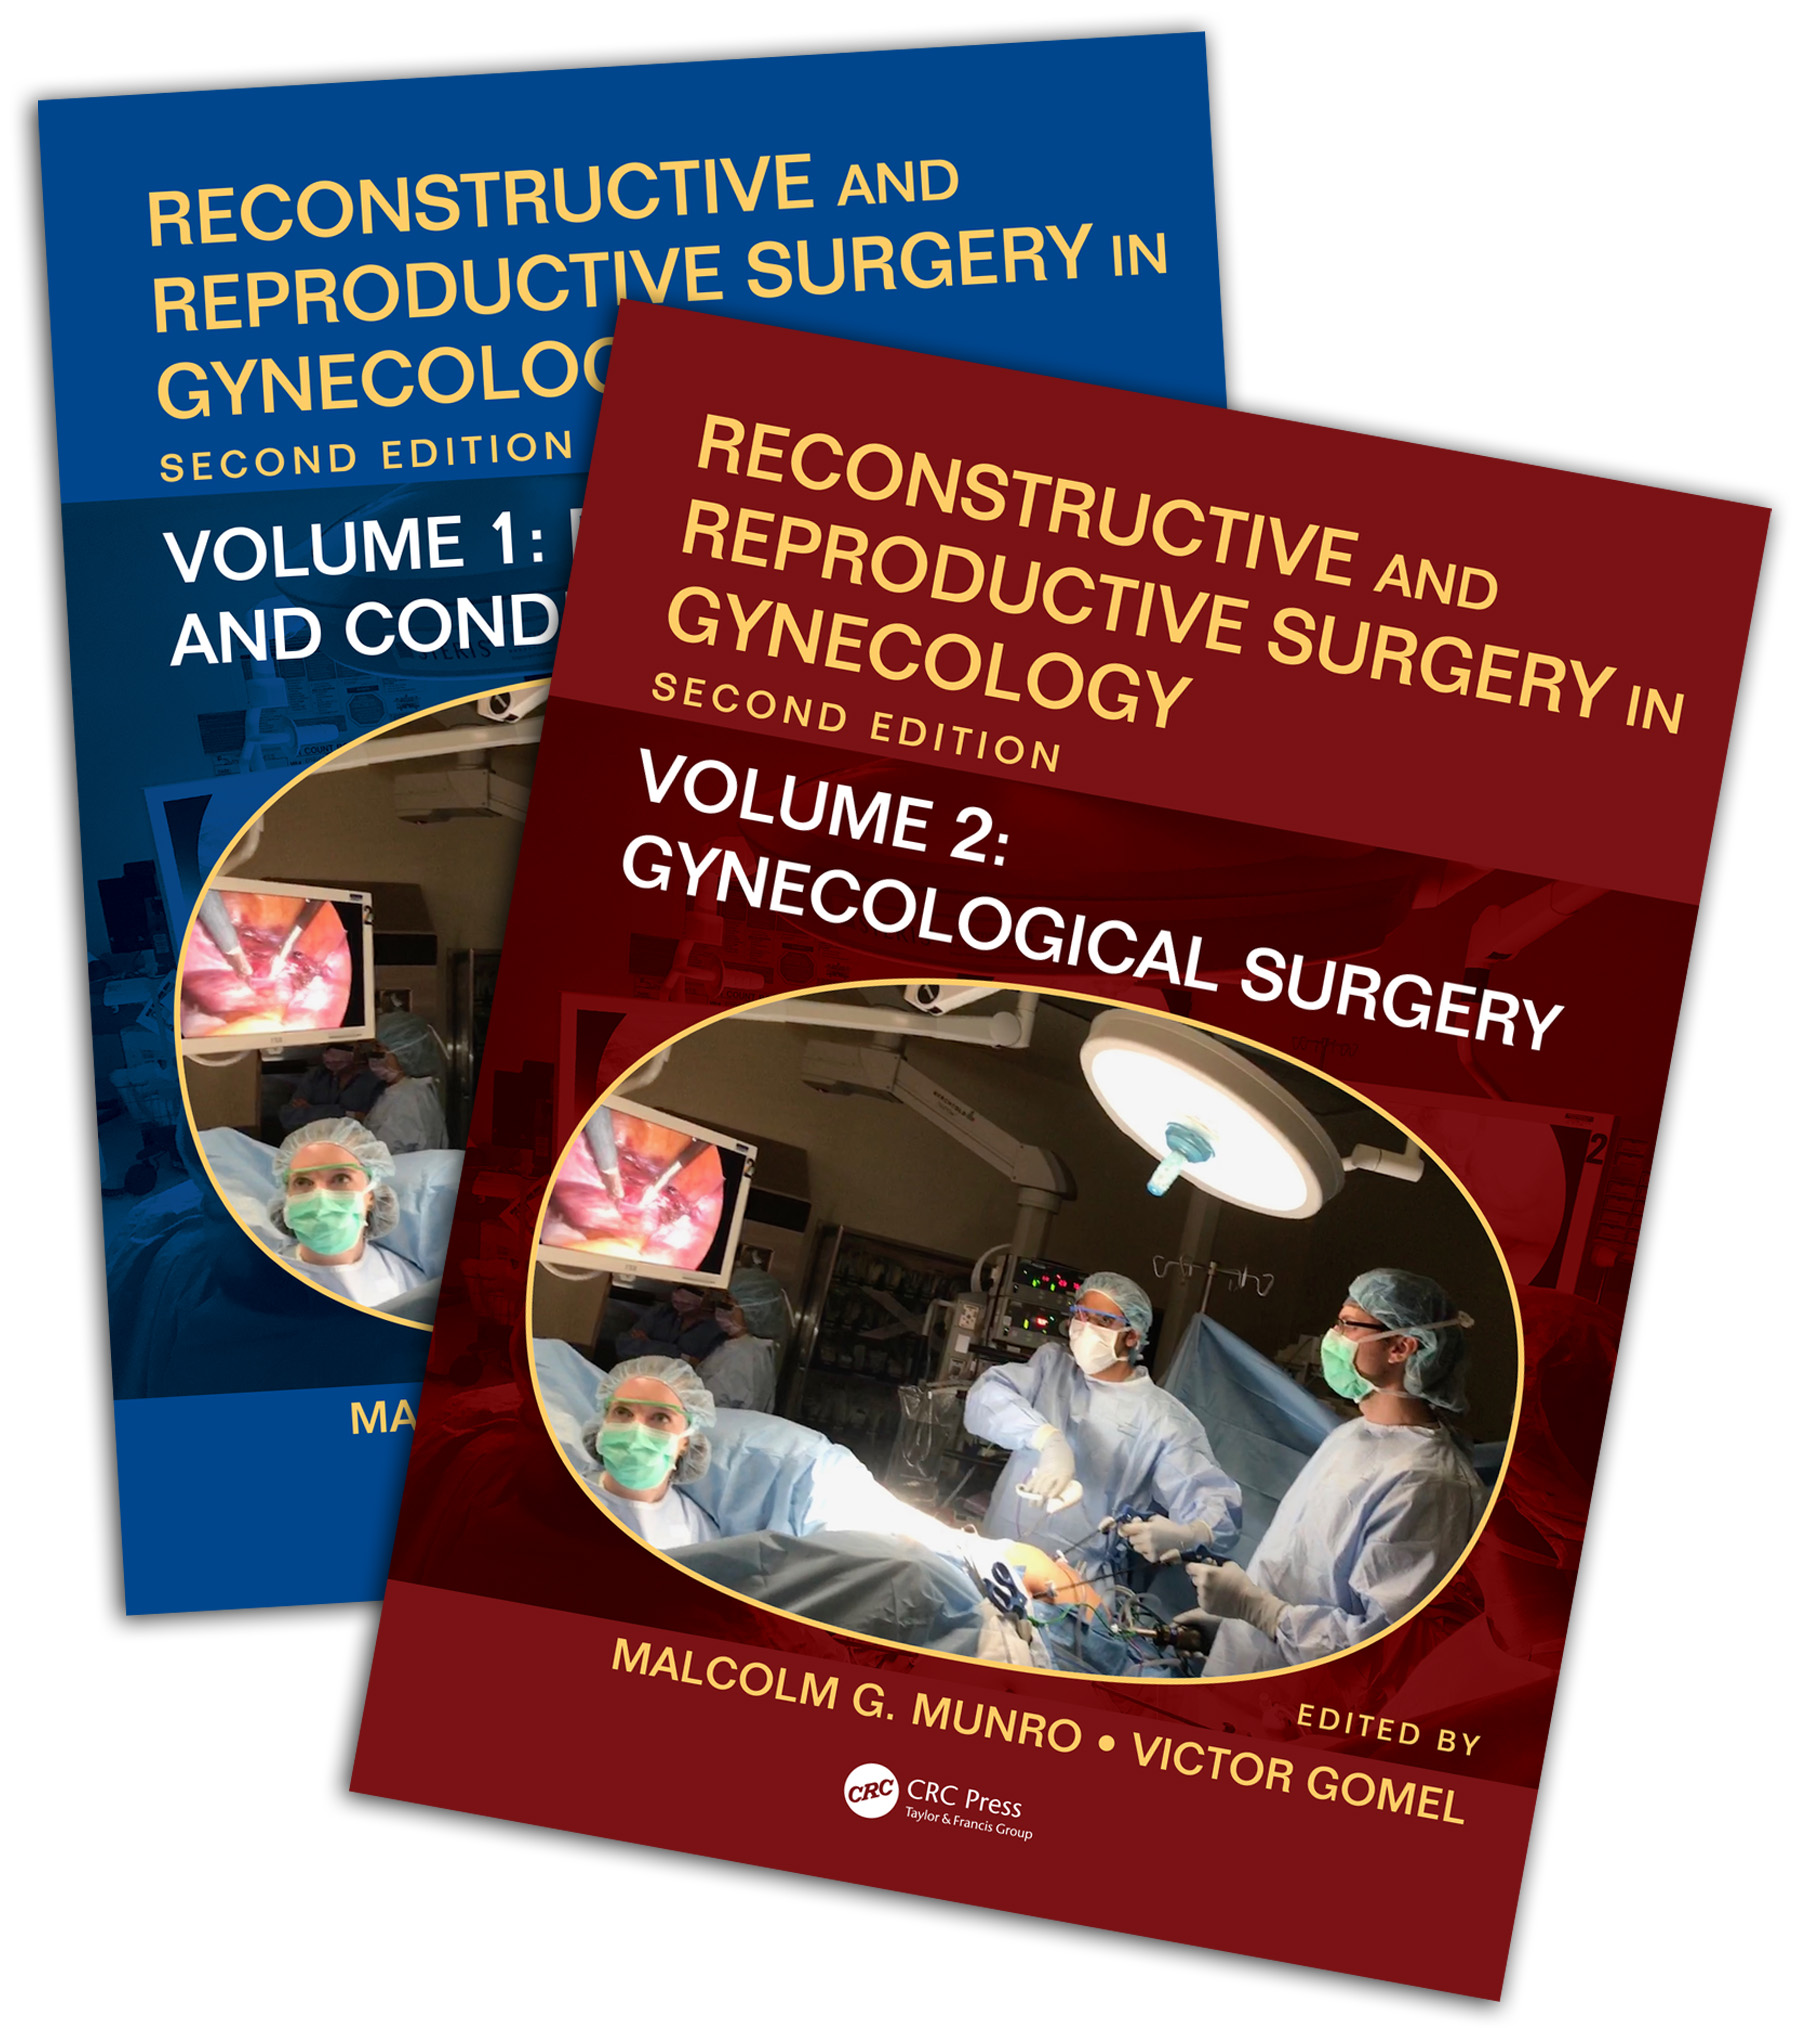 Reconstructive and Reproductive Surgery in Gynecology, Second Edition: Two Volume Set